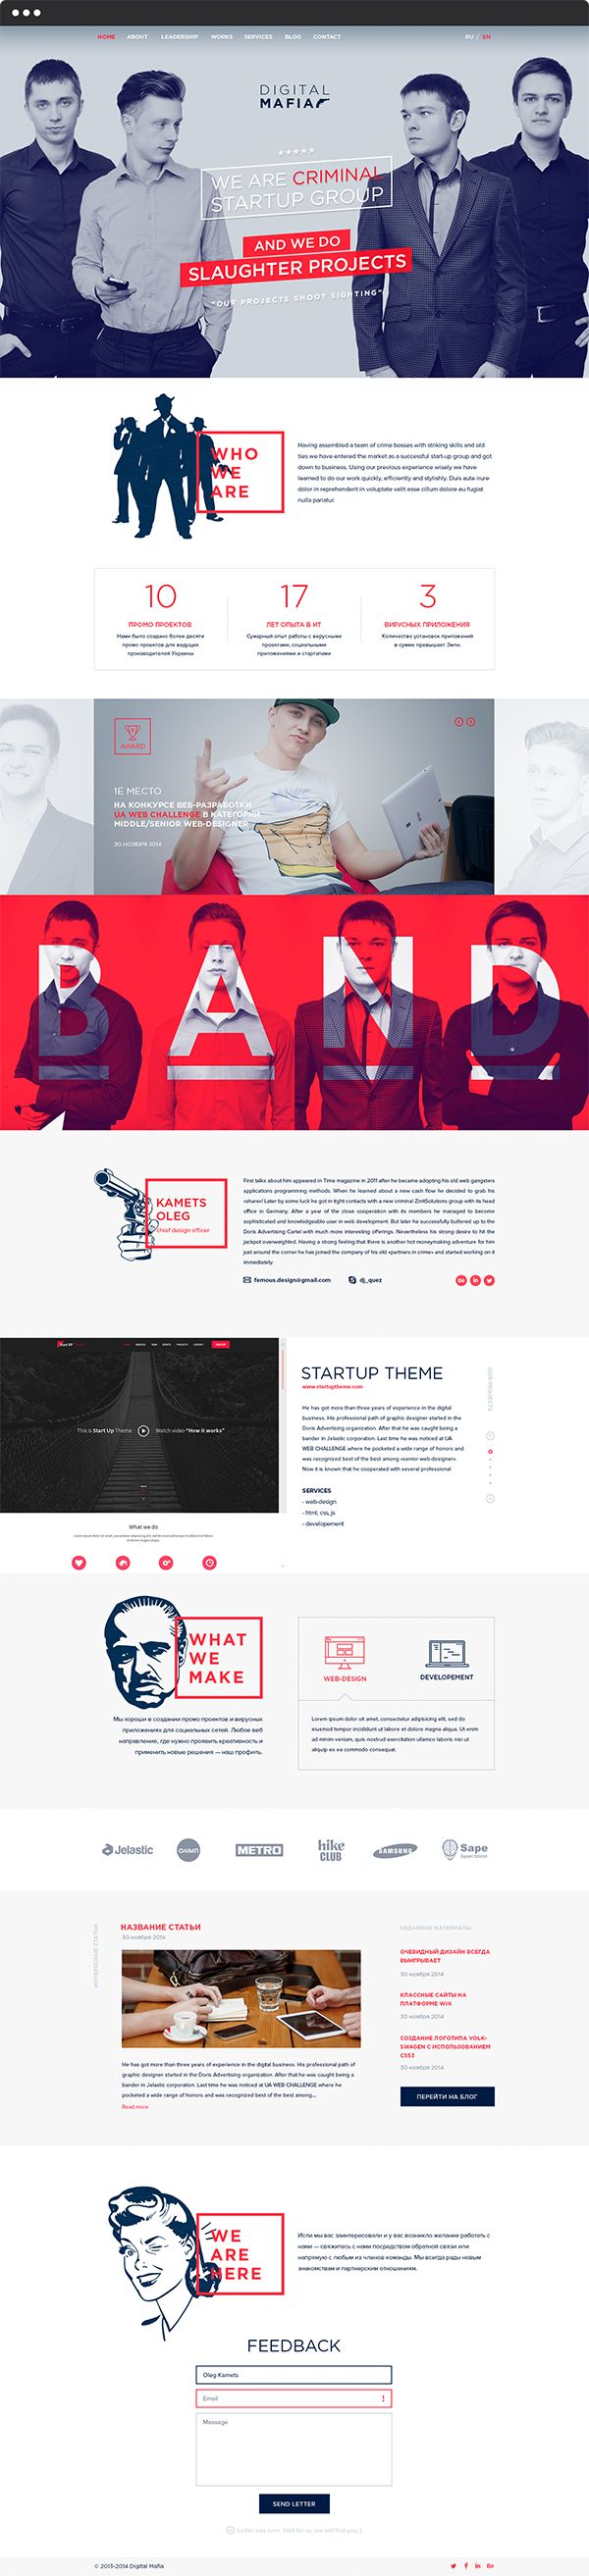 Digital Mafia. Production Agency on Web Design Served